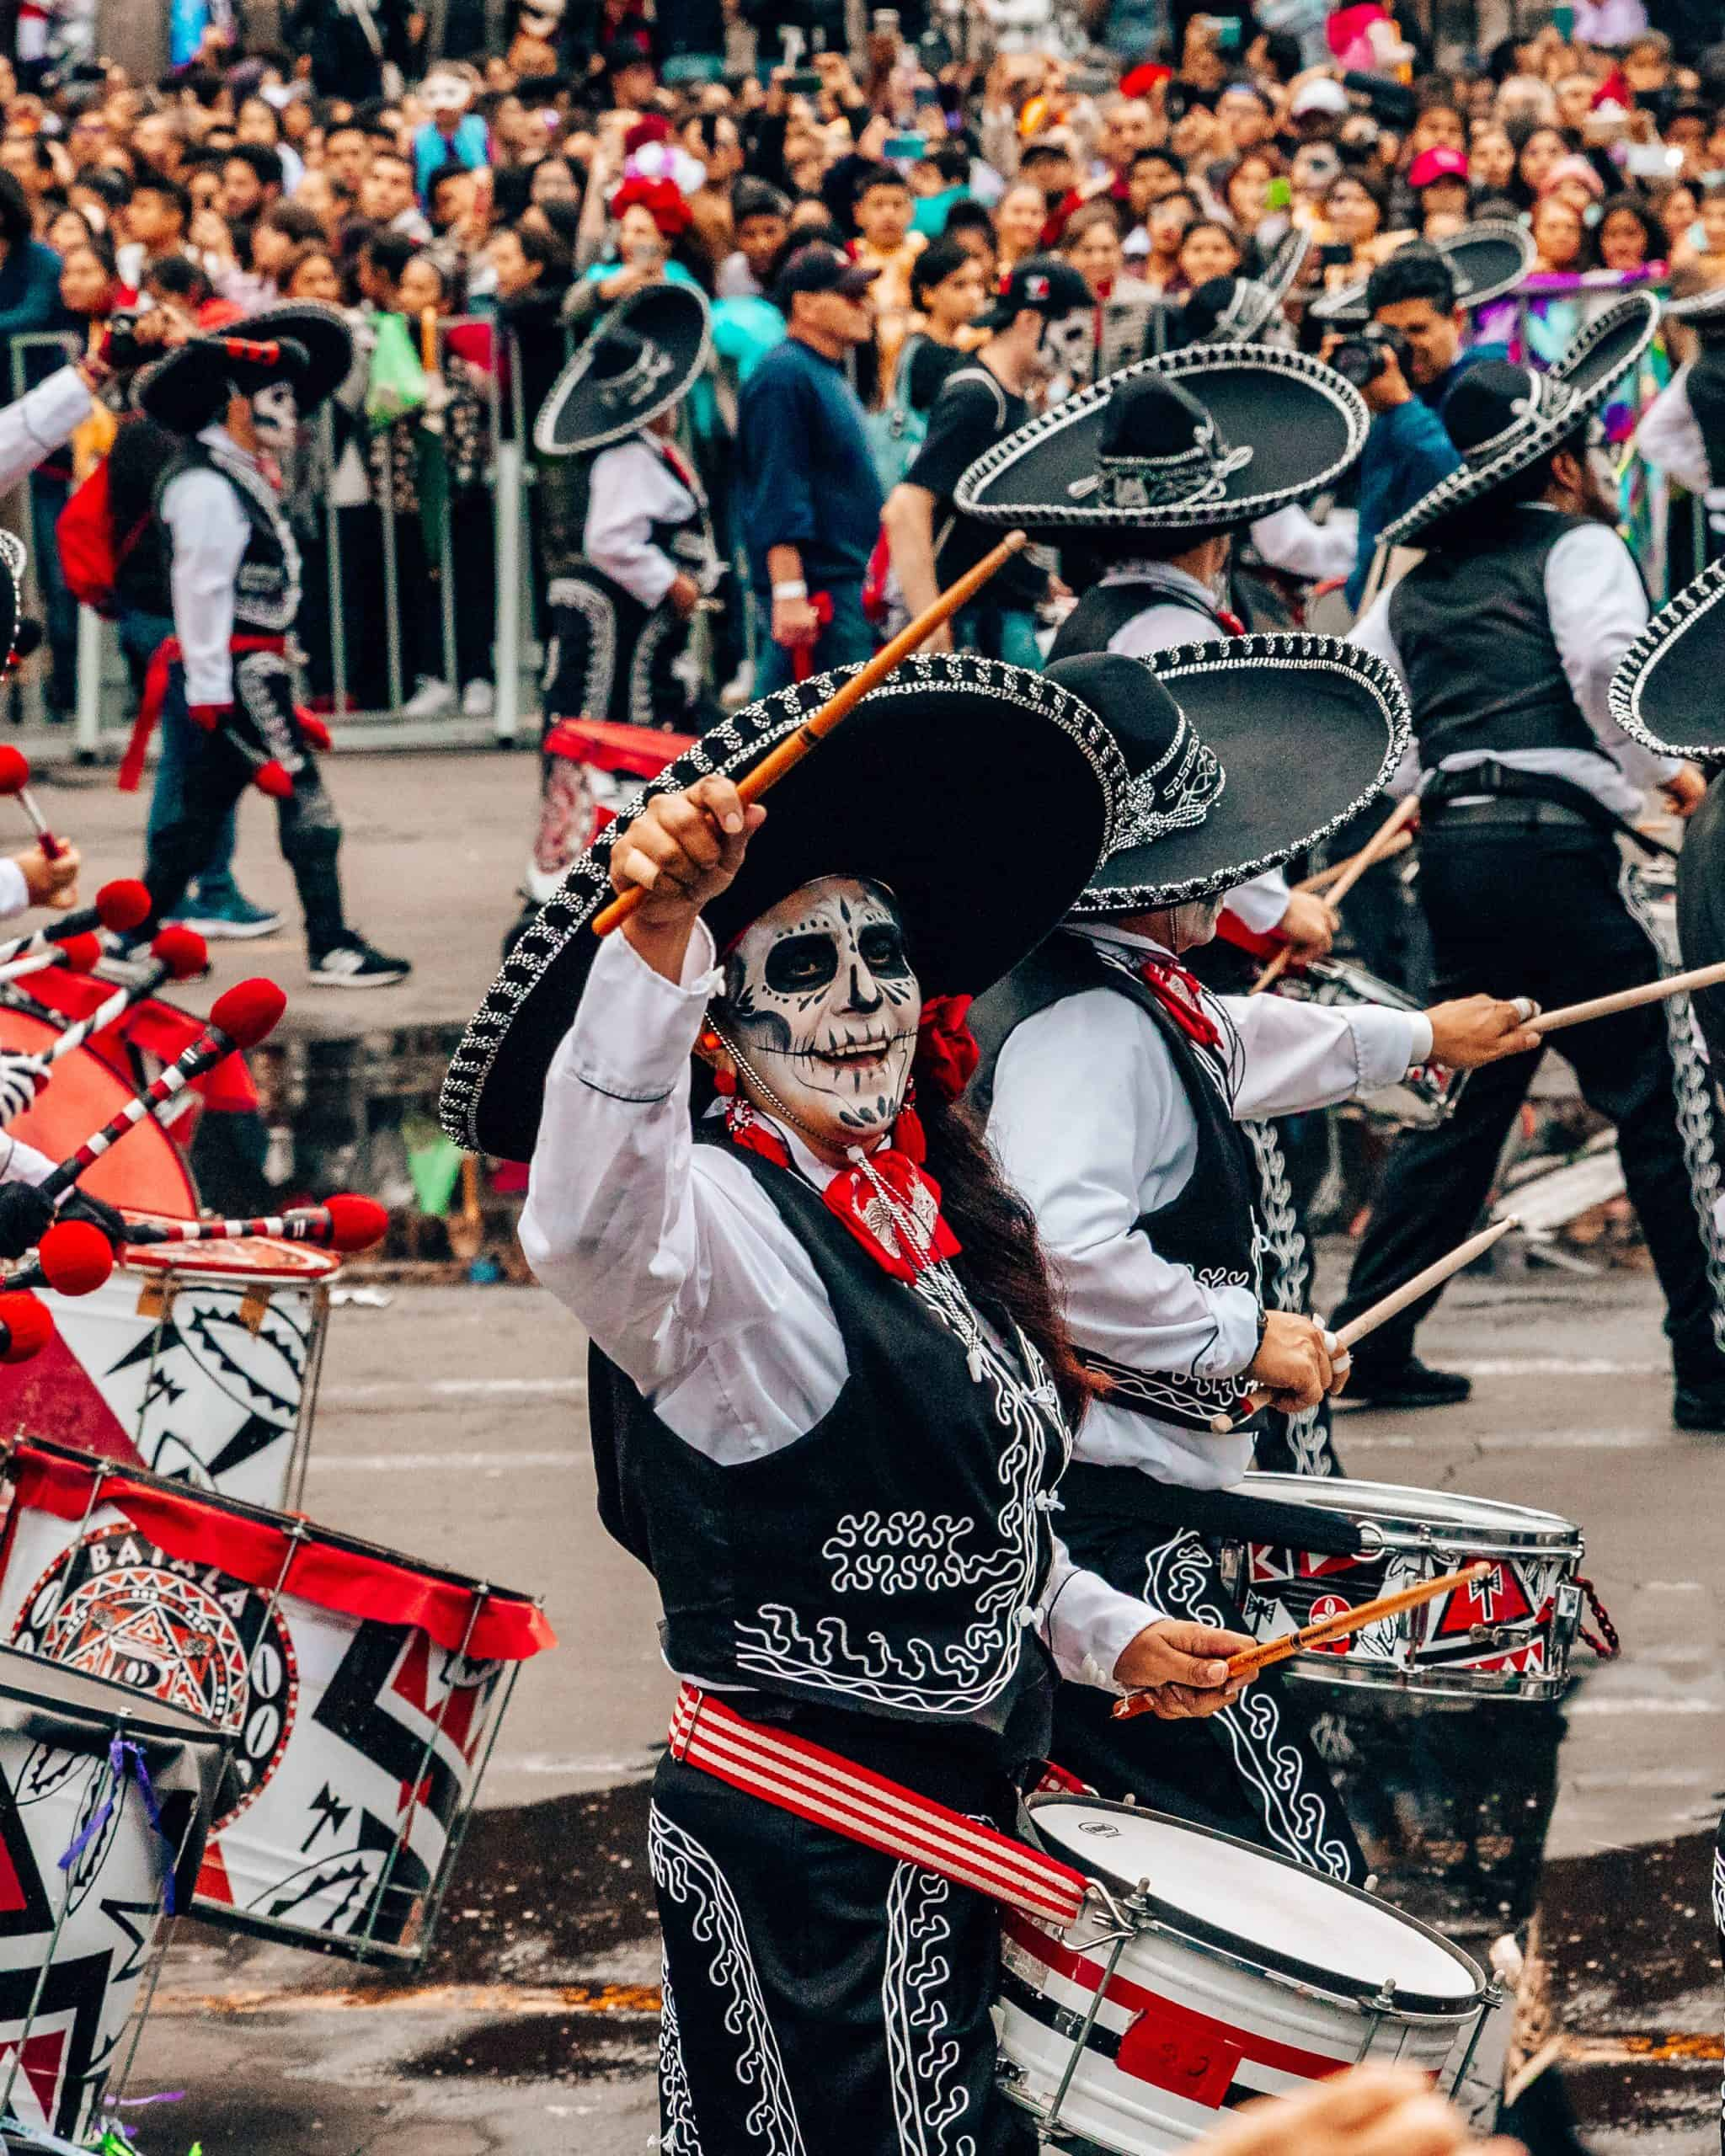 Drummer at Day of the Dead Parade Mexico City